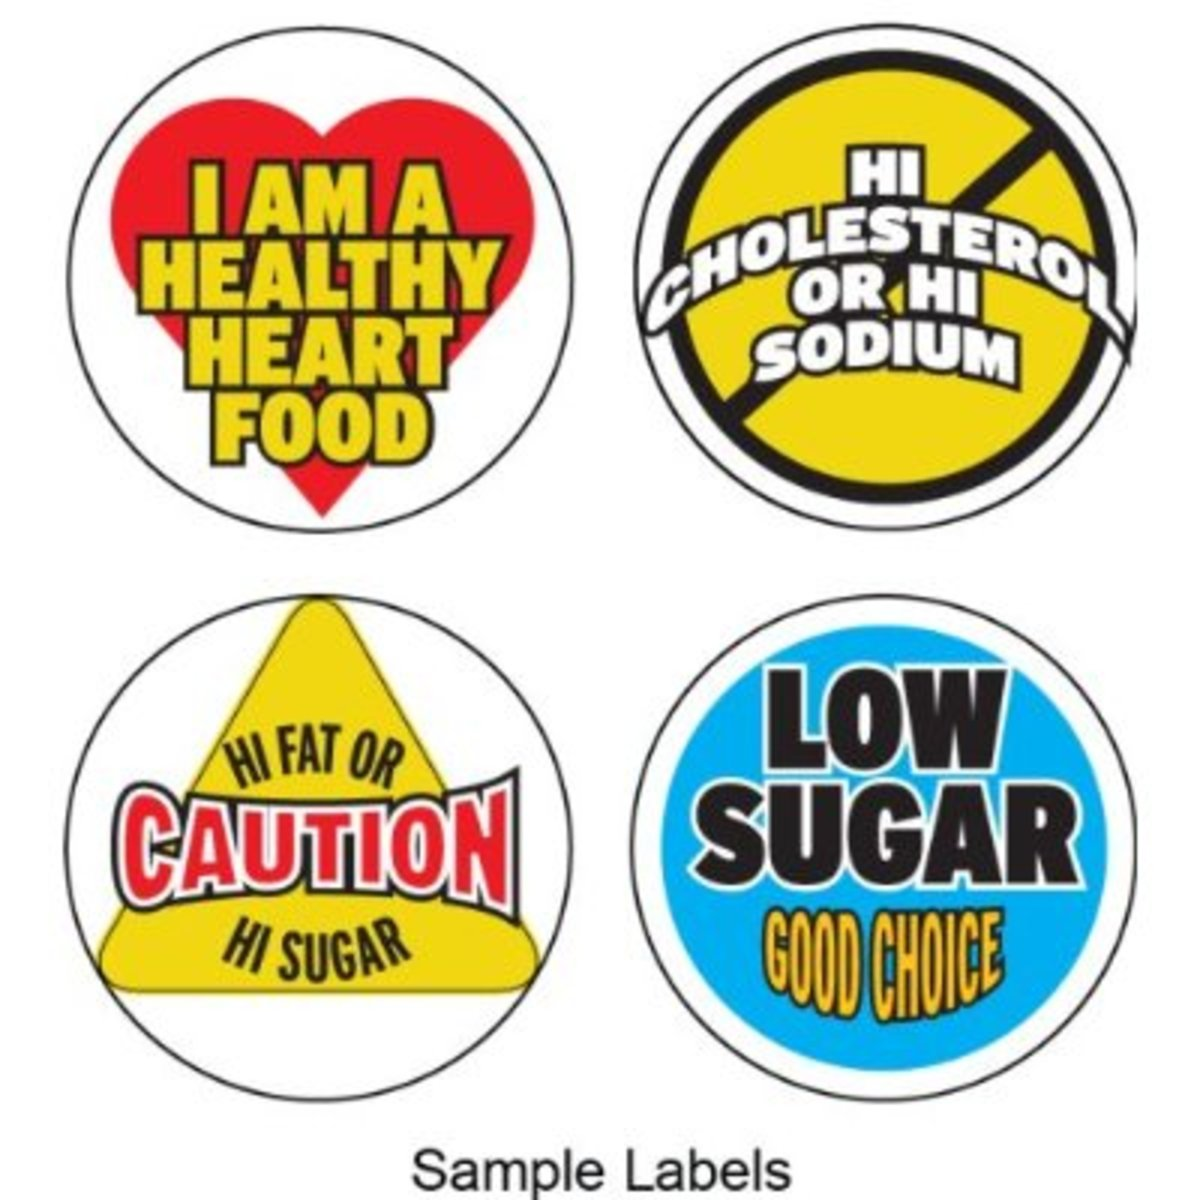 Food Allergy Warning and Safety Labels